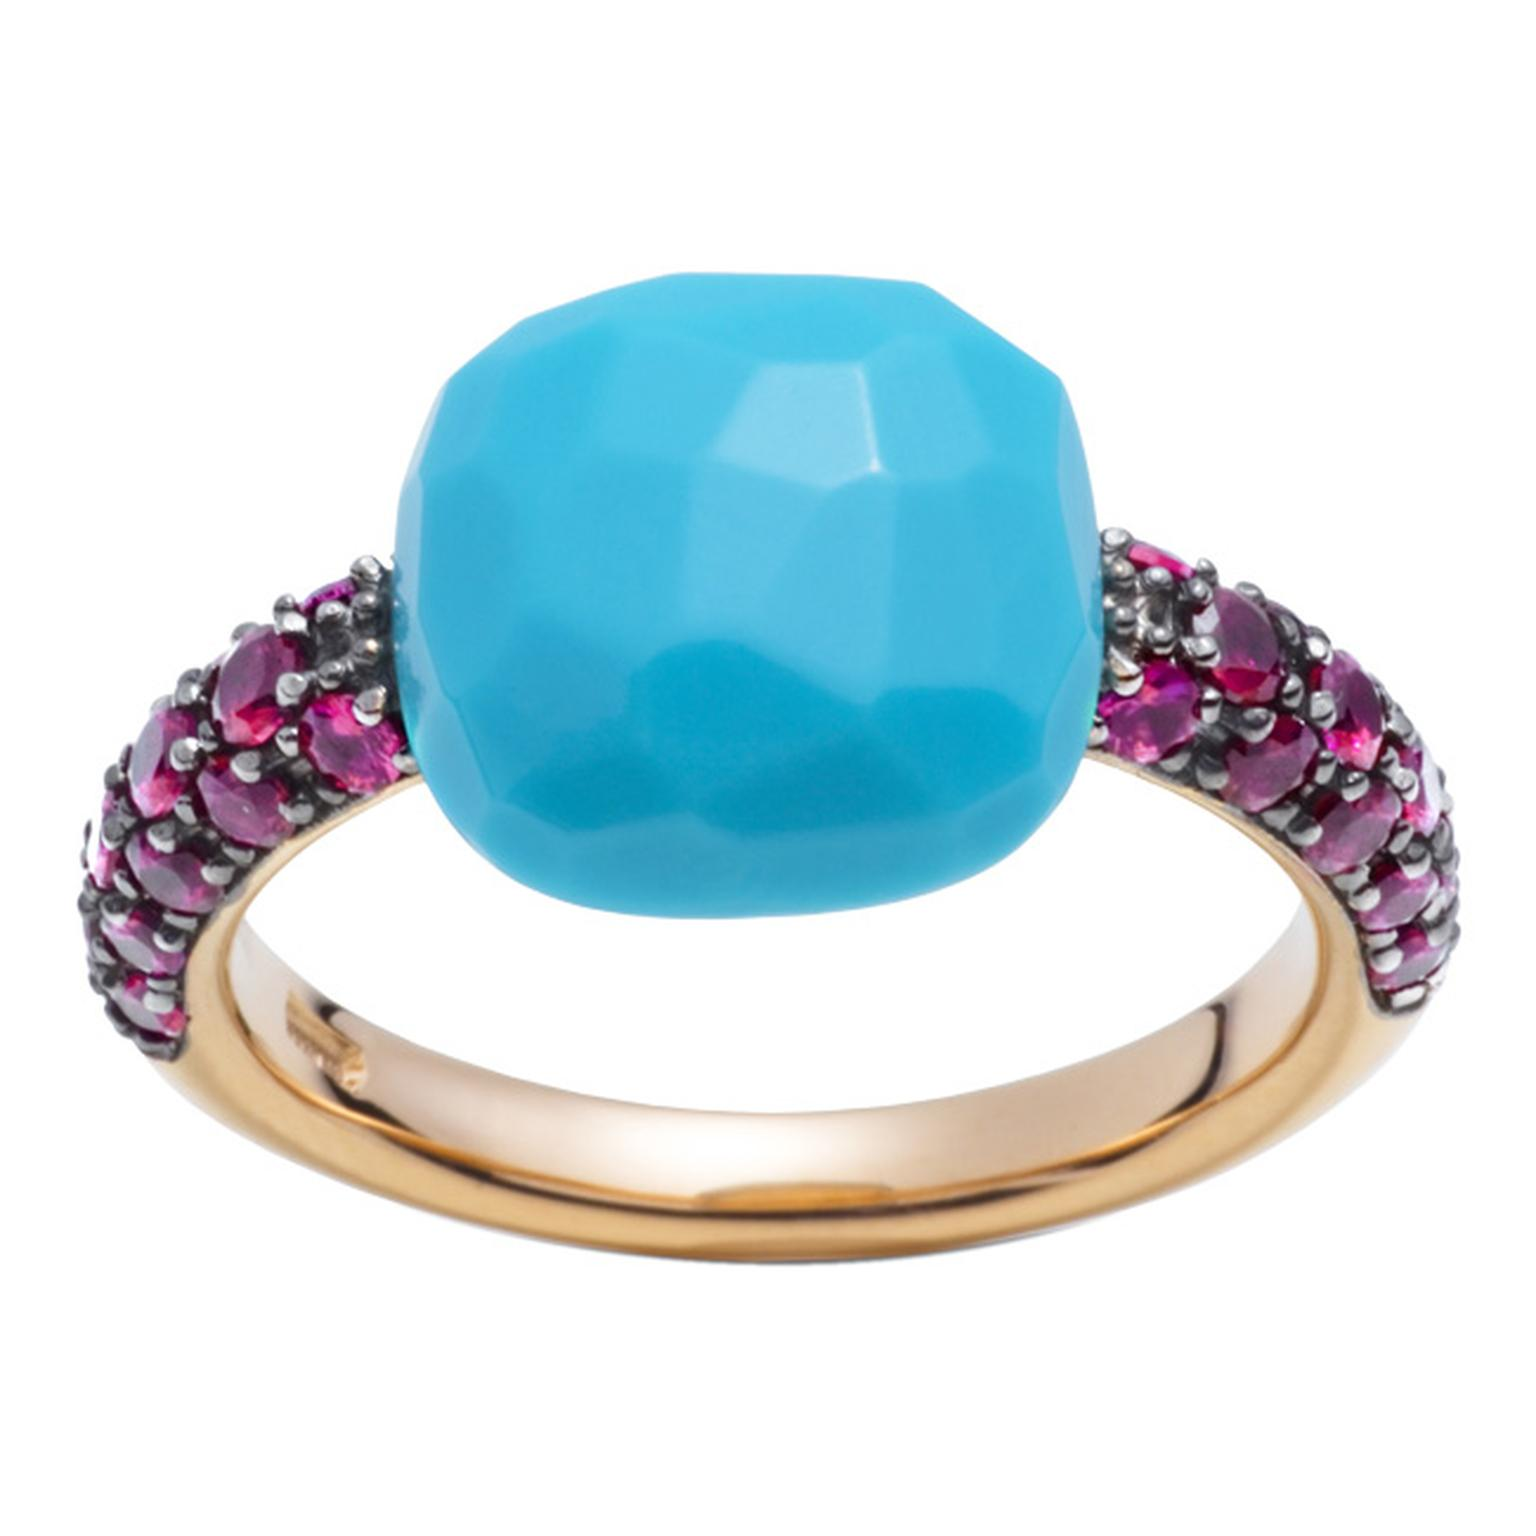 Pomellato Capri ring in rose gold with rubies and a cushion-cut turquoise.